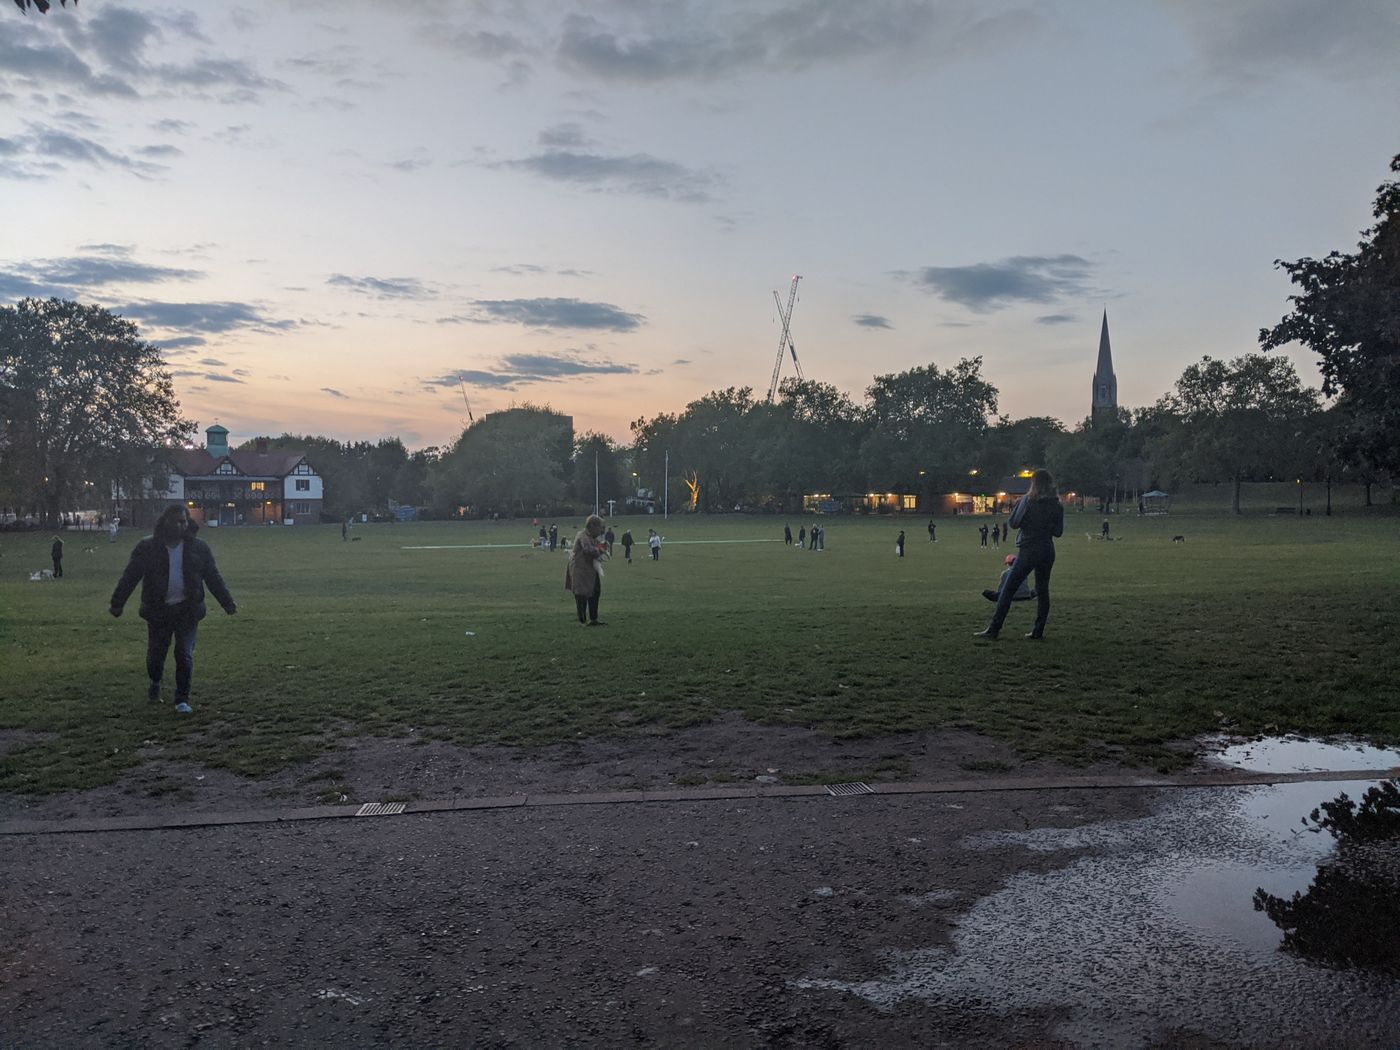 Yesterday's beautiful sunset at Paddington Rec was a great evening for a yoga session 🙏